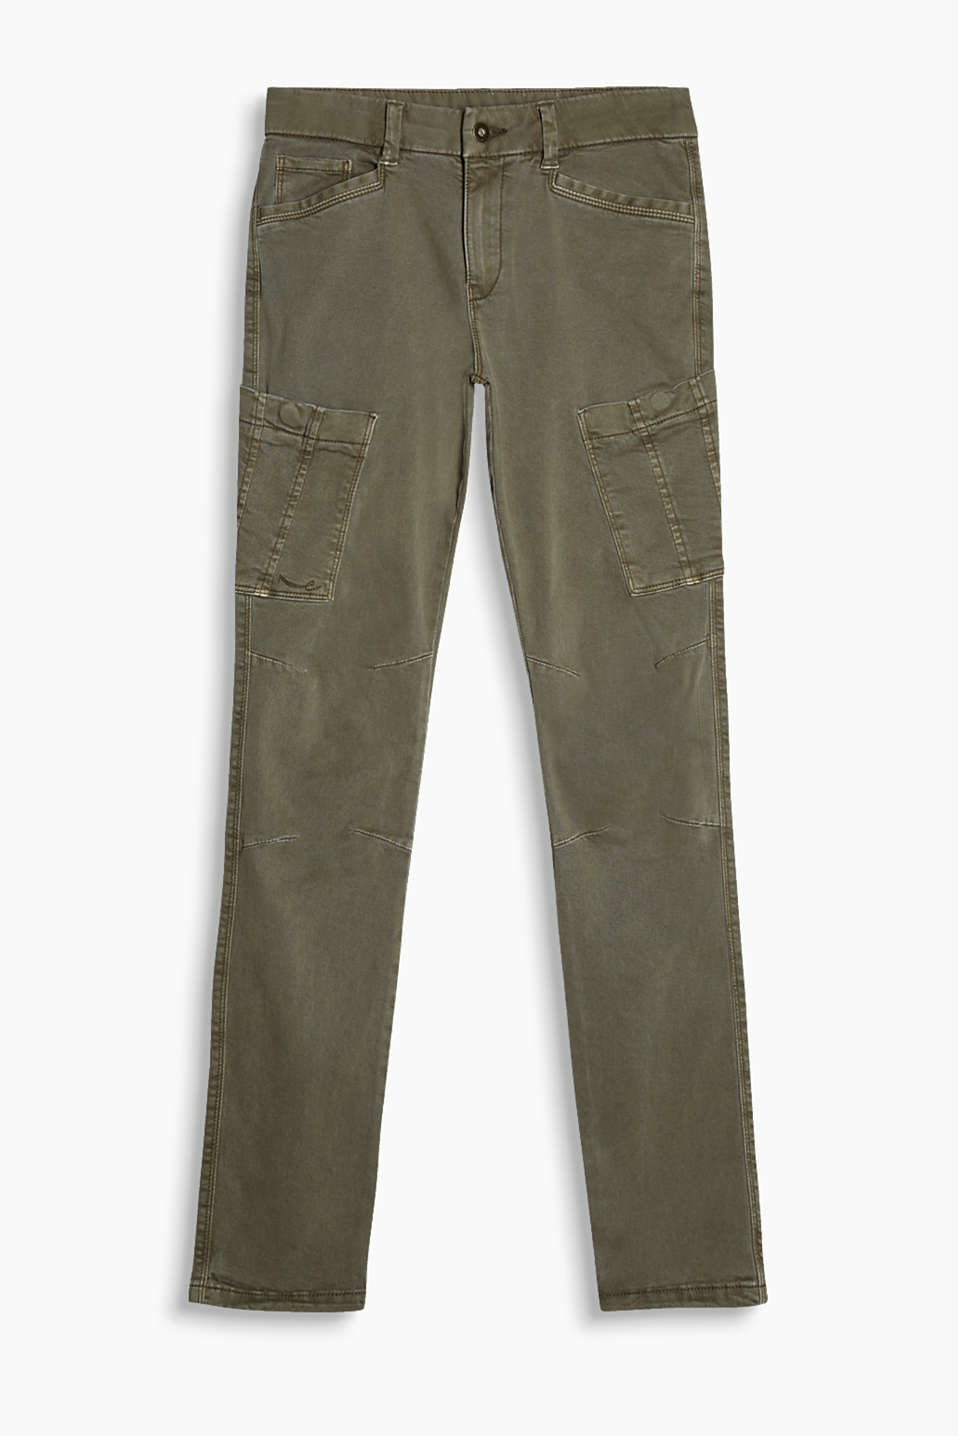 Drainpipe trousers with patch pockets in blended cotton with added stretch for comfort.